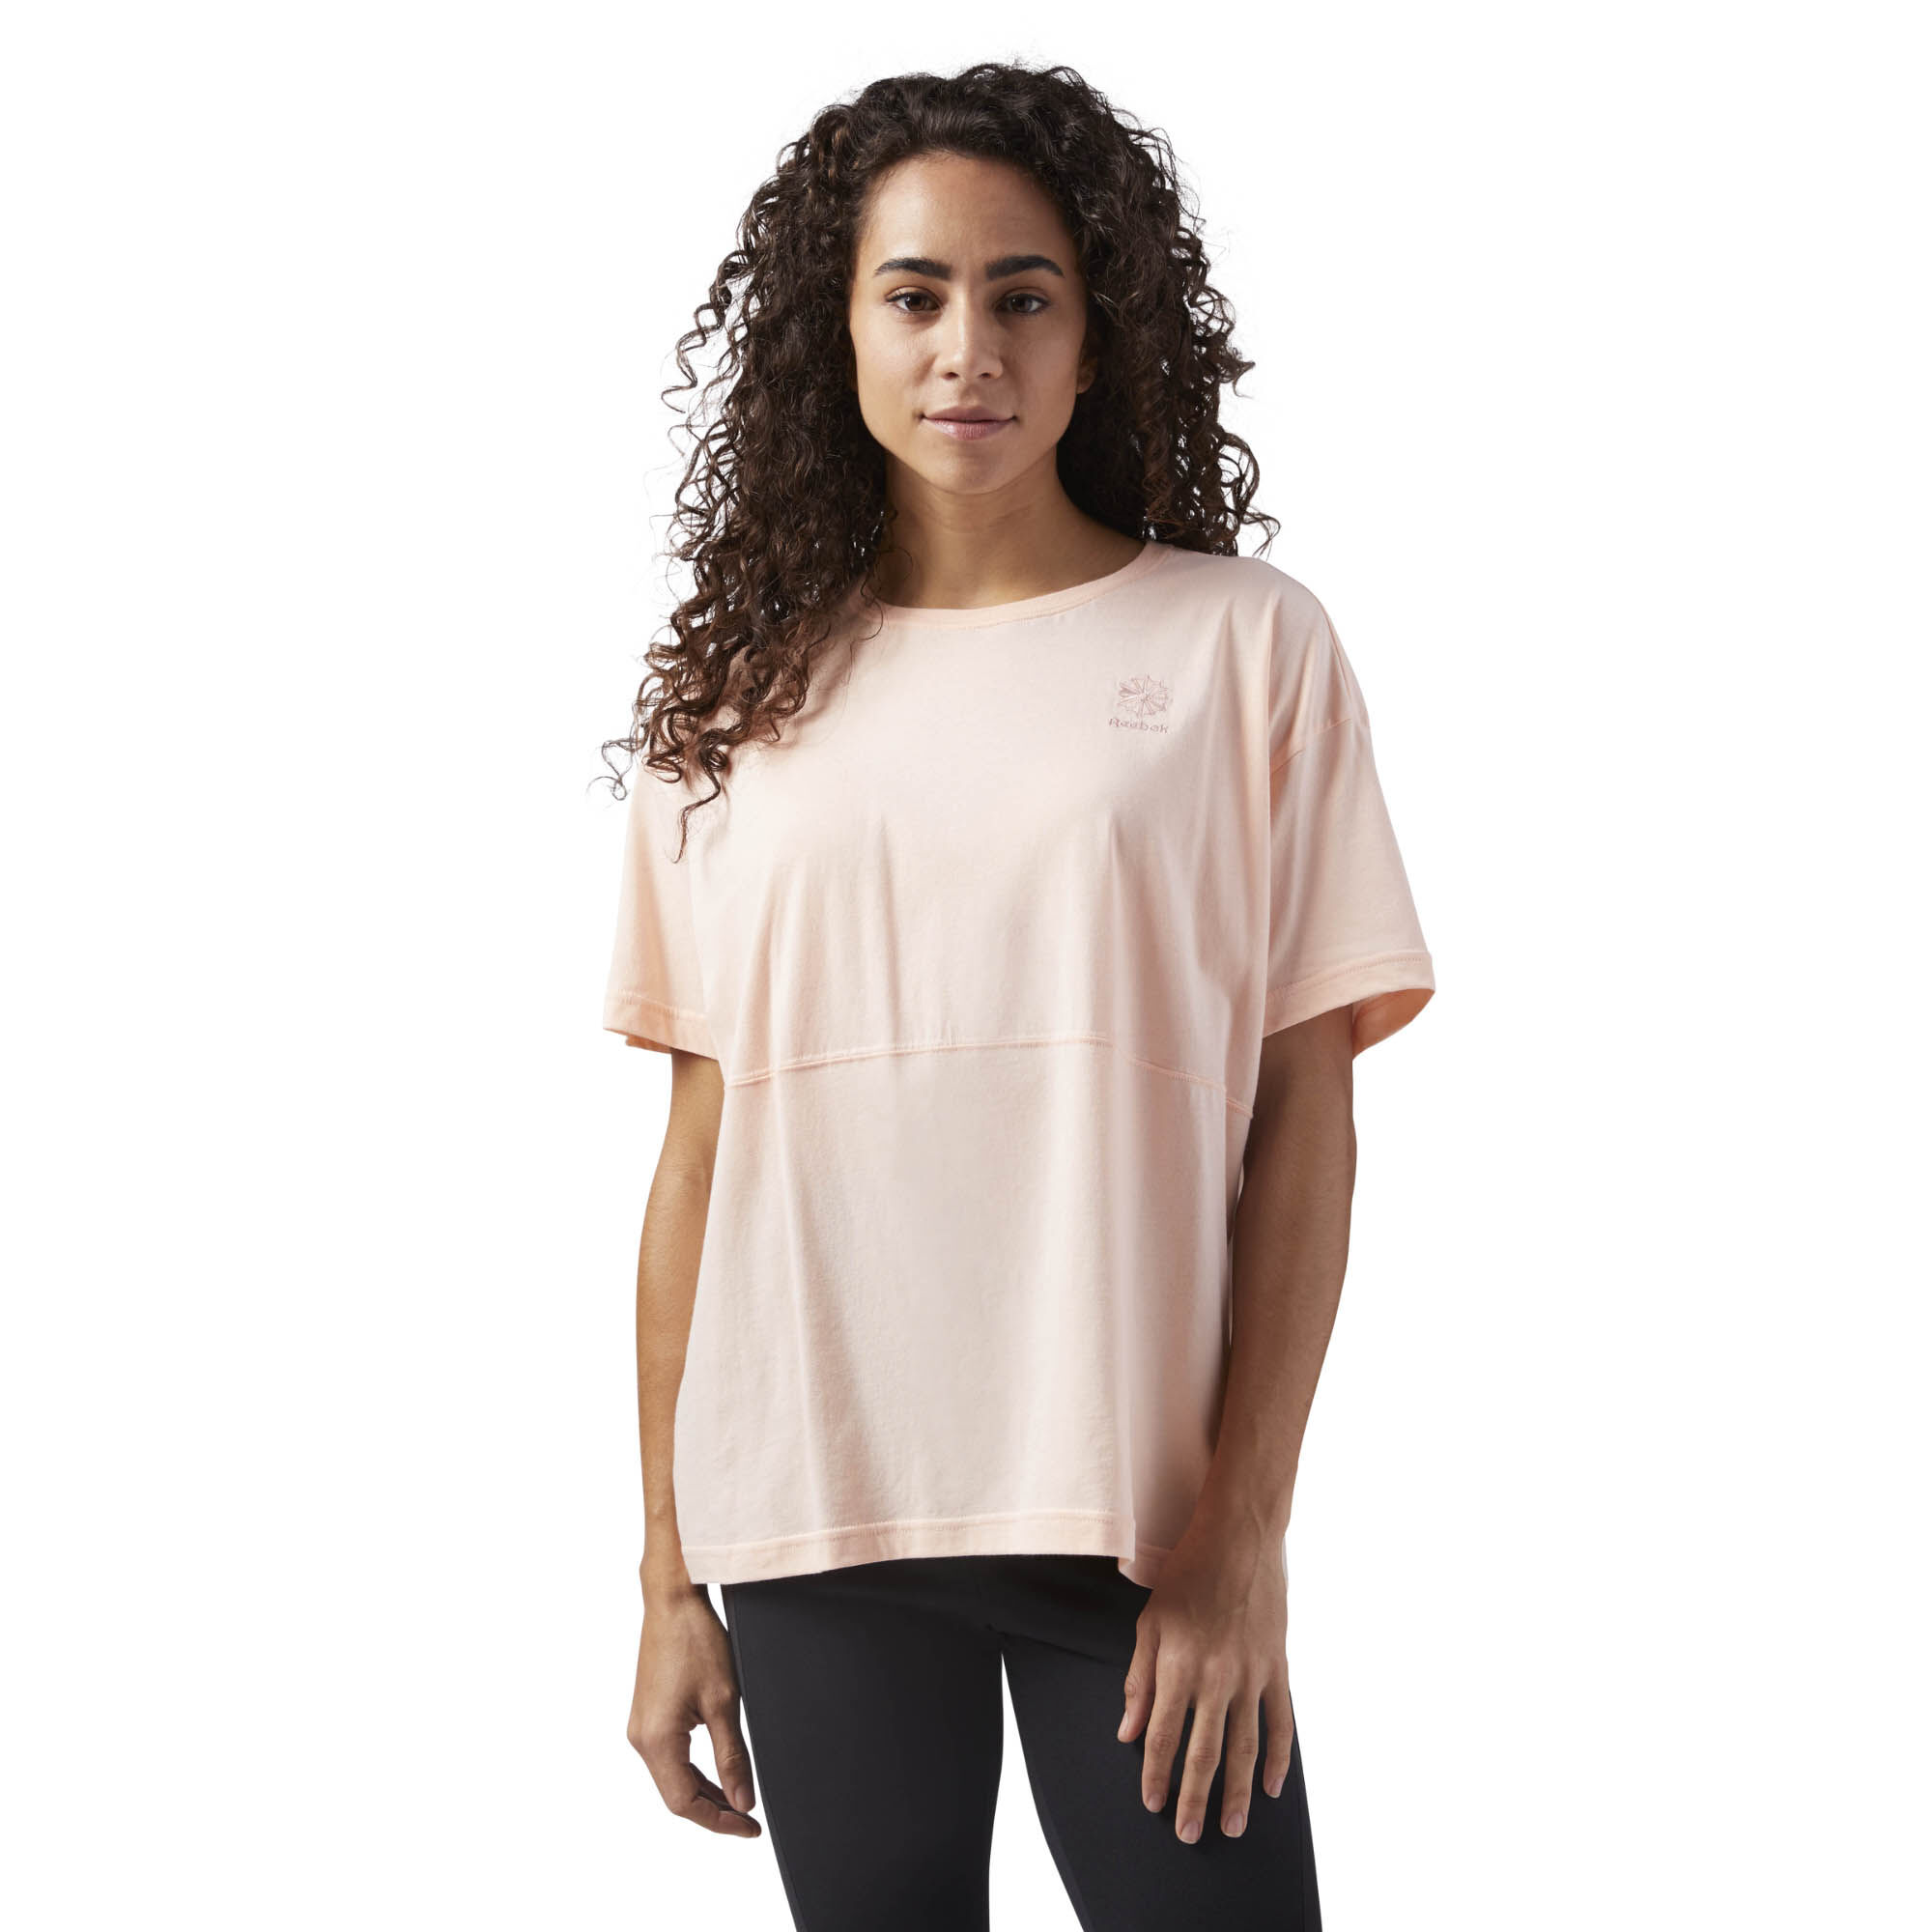 Reebok Layering T-Shirt Quality Free Shipping Comfortable Cheap Online Cheap Sale Low Cost Latest Collections Latest Collections Cheap Online gIvCie